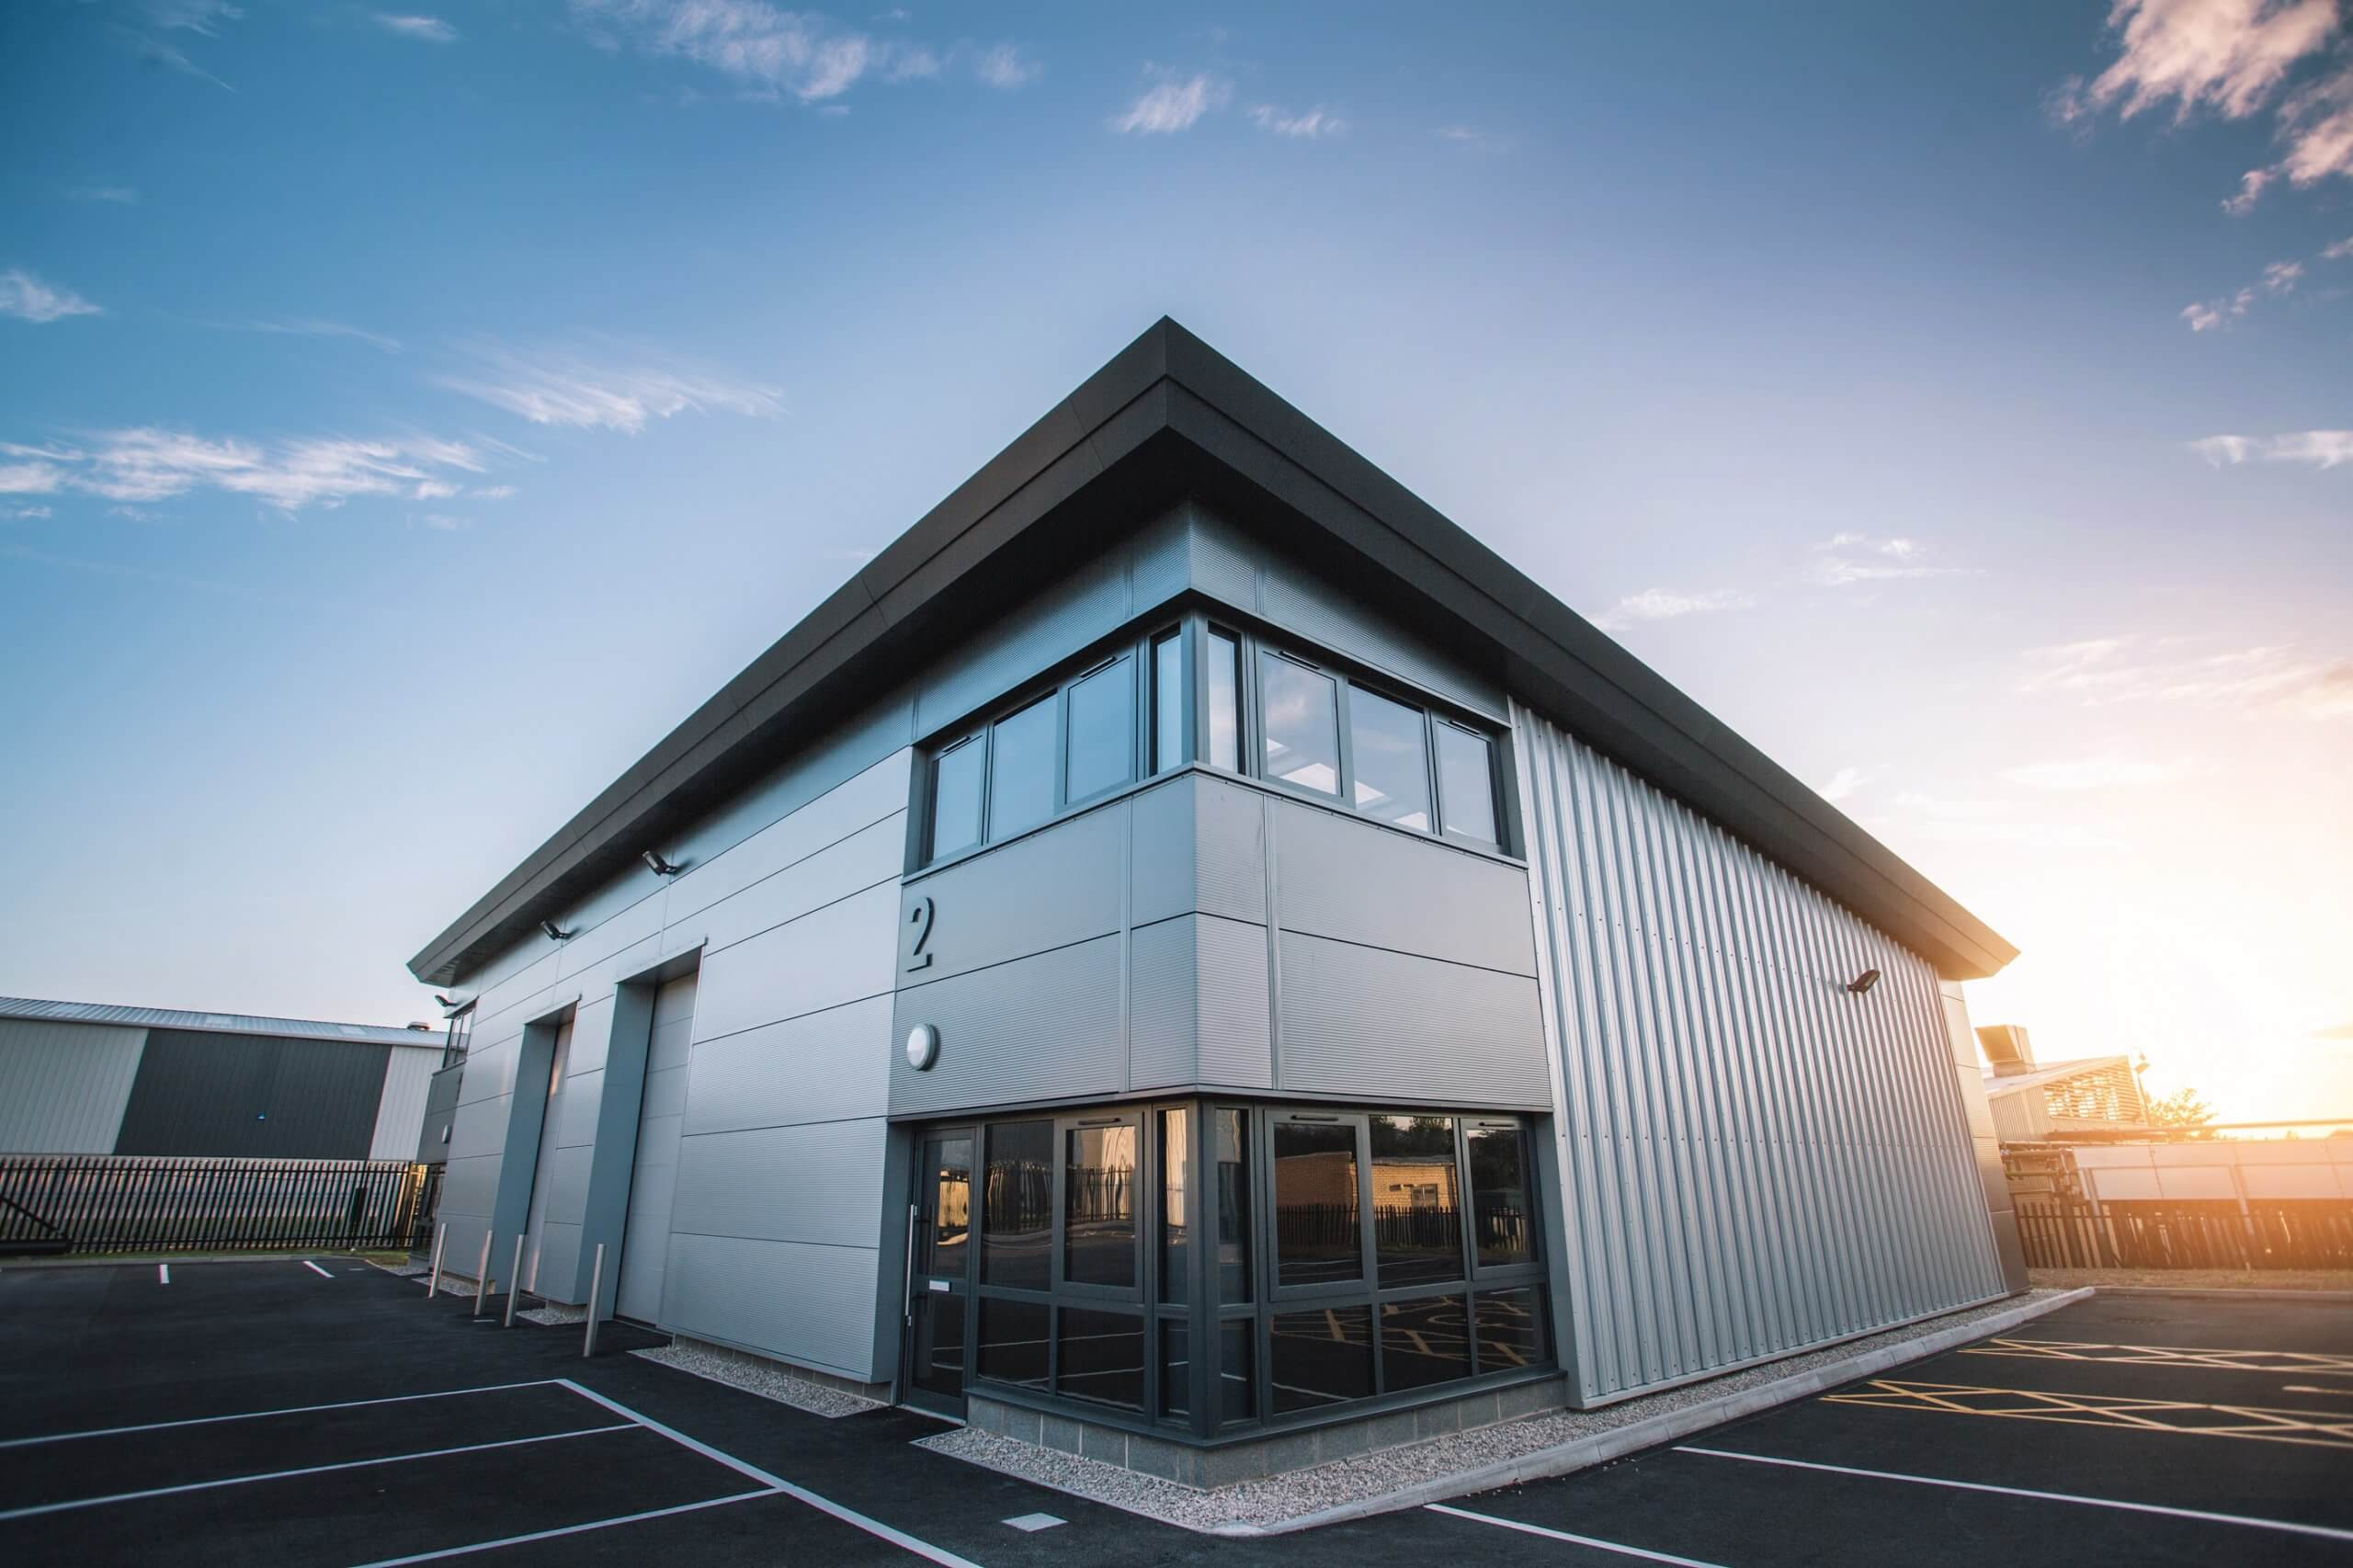 Work completed on £3m industrial development in Barnsley